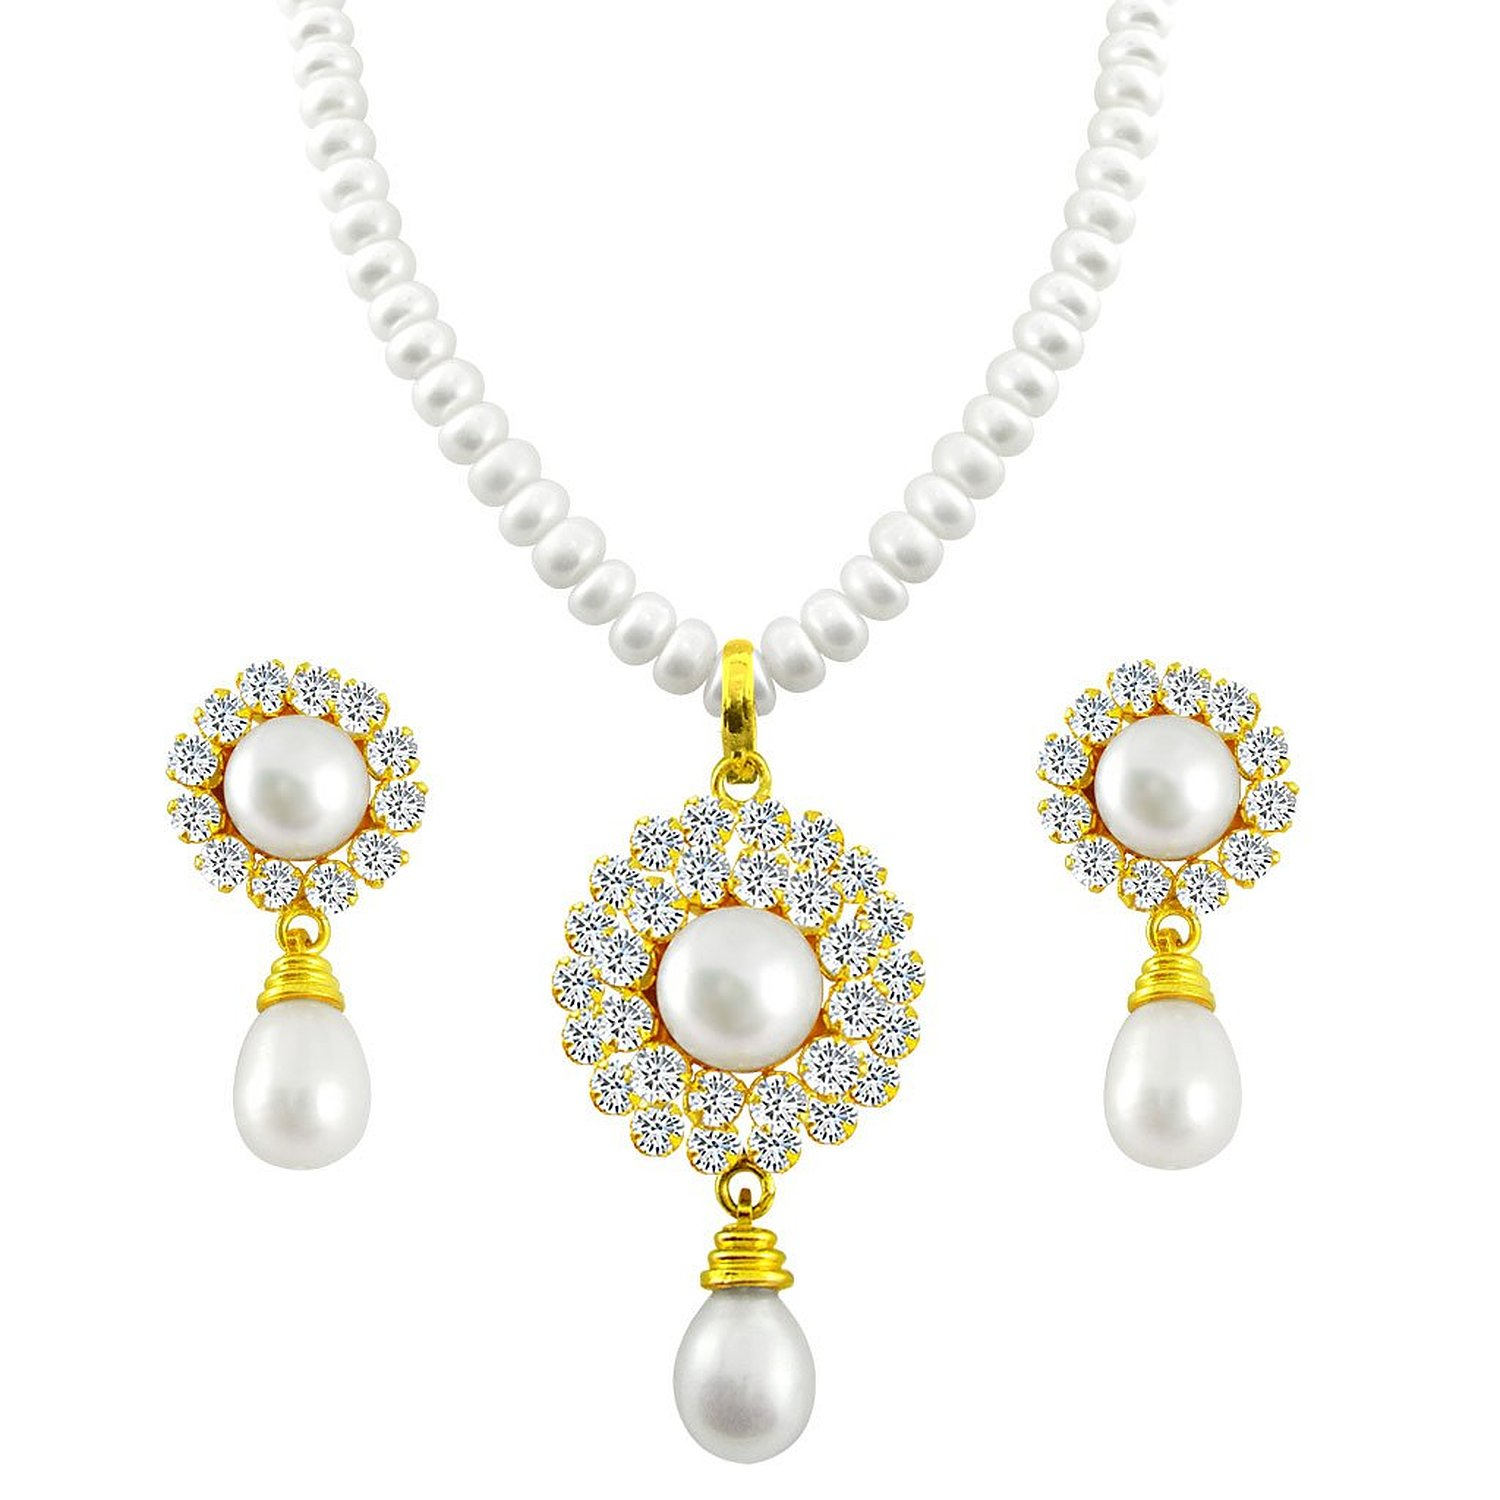 pearl jewellery buy sri jagdamba pearls pearl white pendant necklace with earrings set for  women/girls online nzugqcd